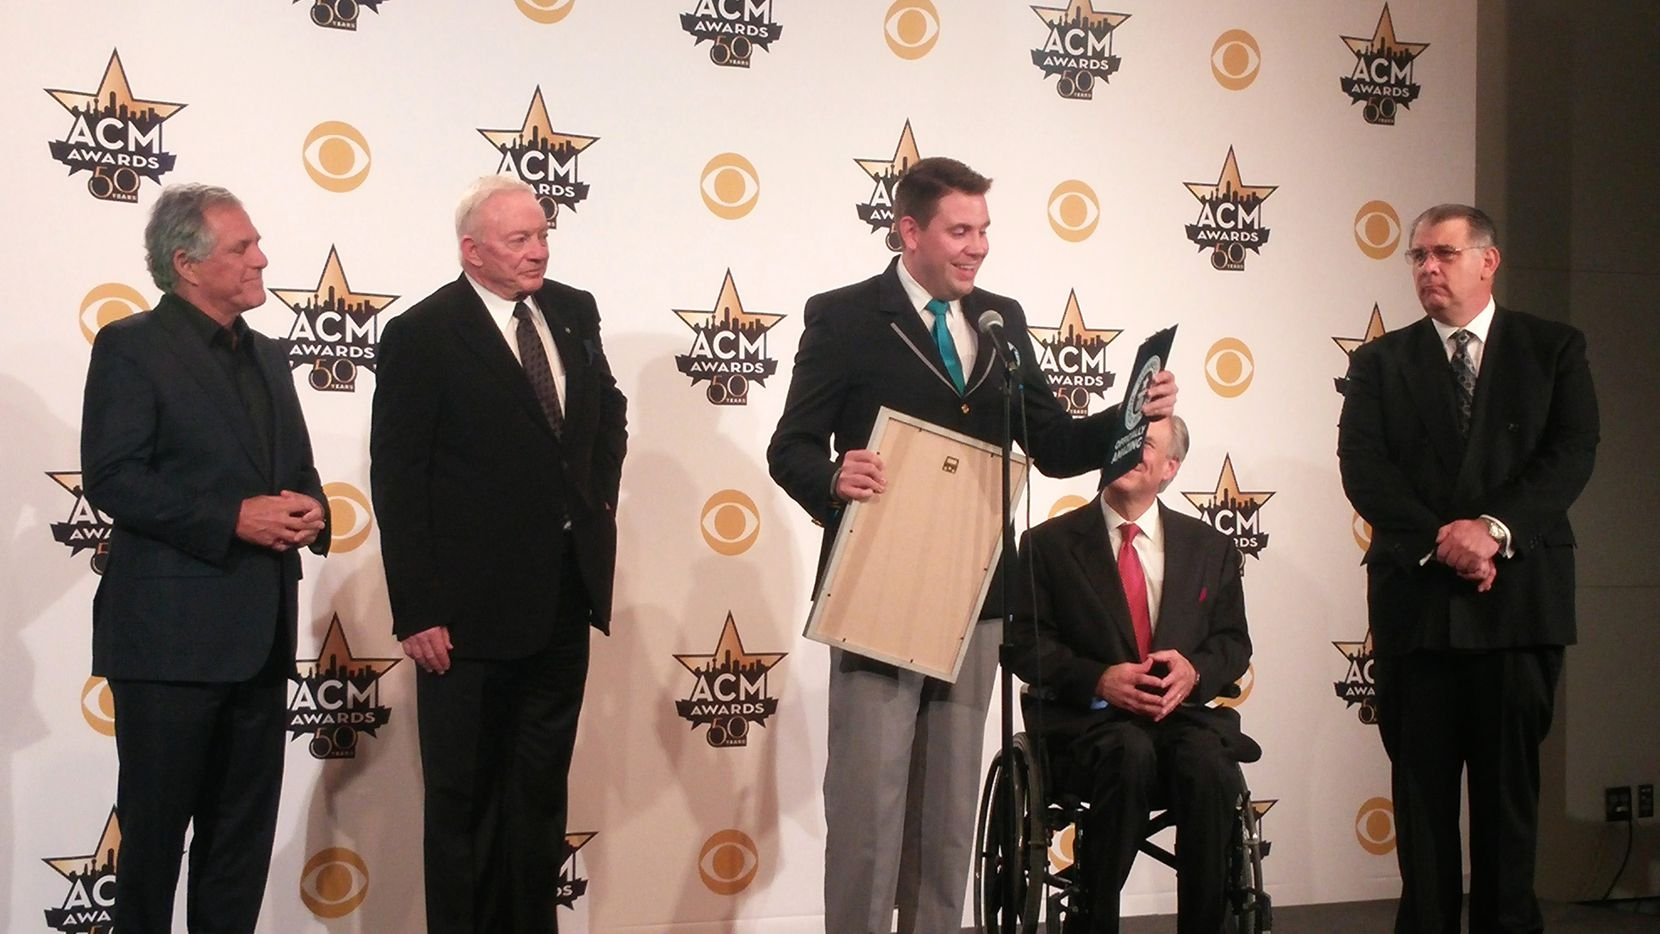 Supporters of the ACM Awards' Guinness World Record included Jerry Jones (second from left) and Gov. Greg Abbott (second from right).